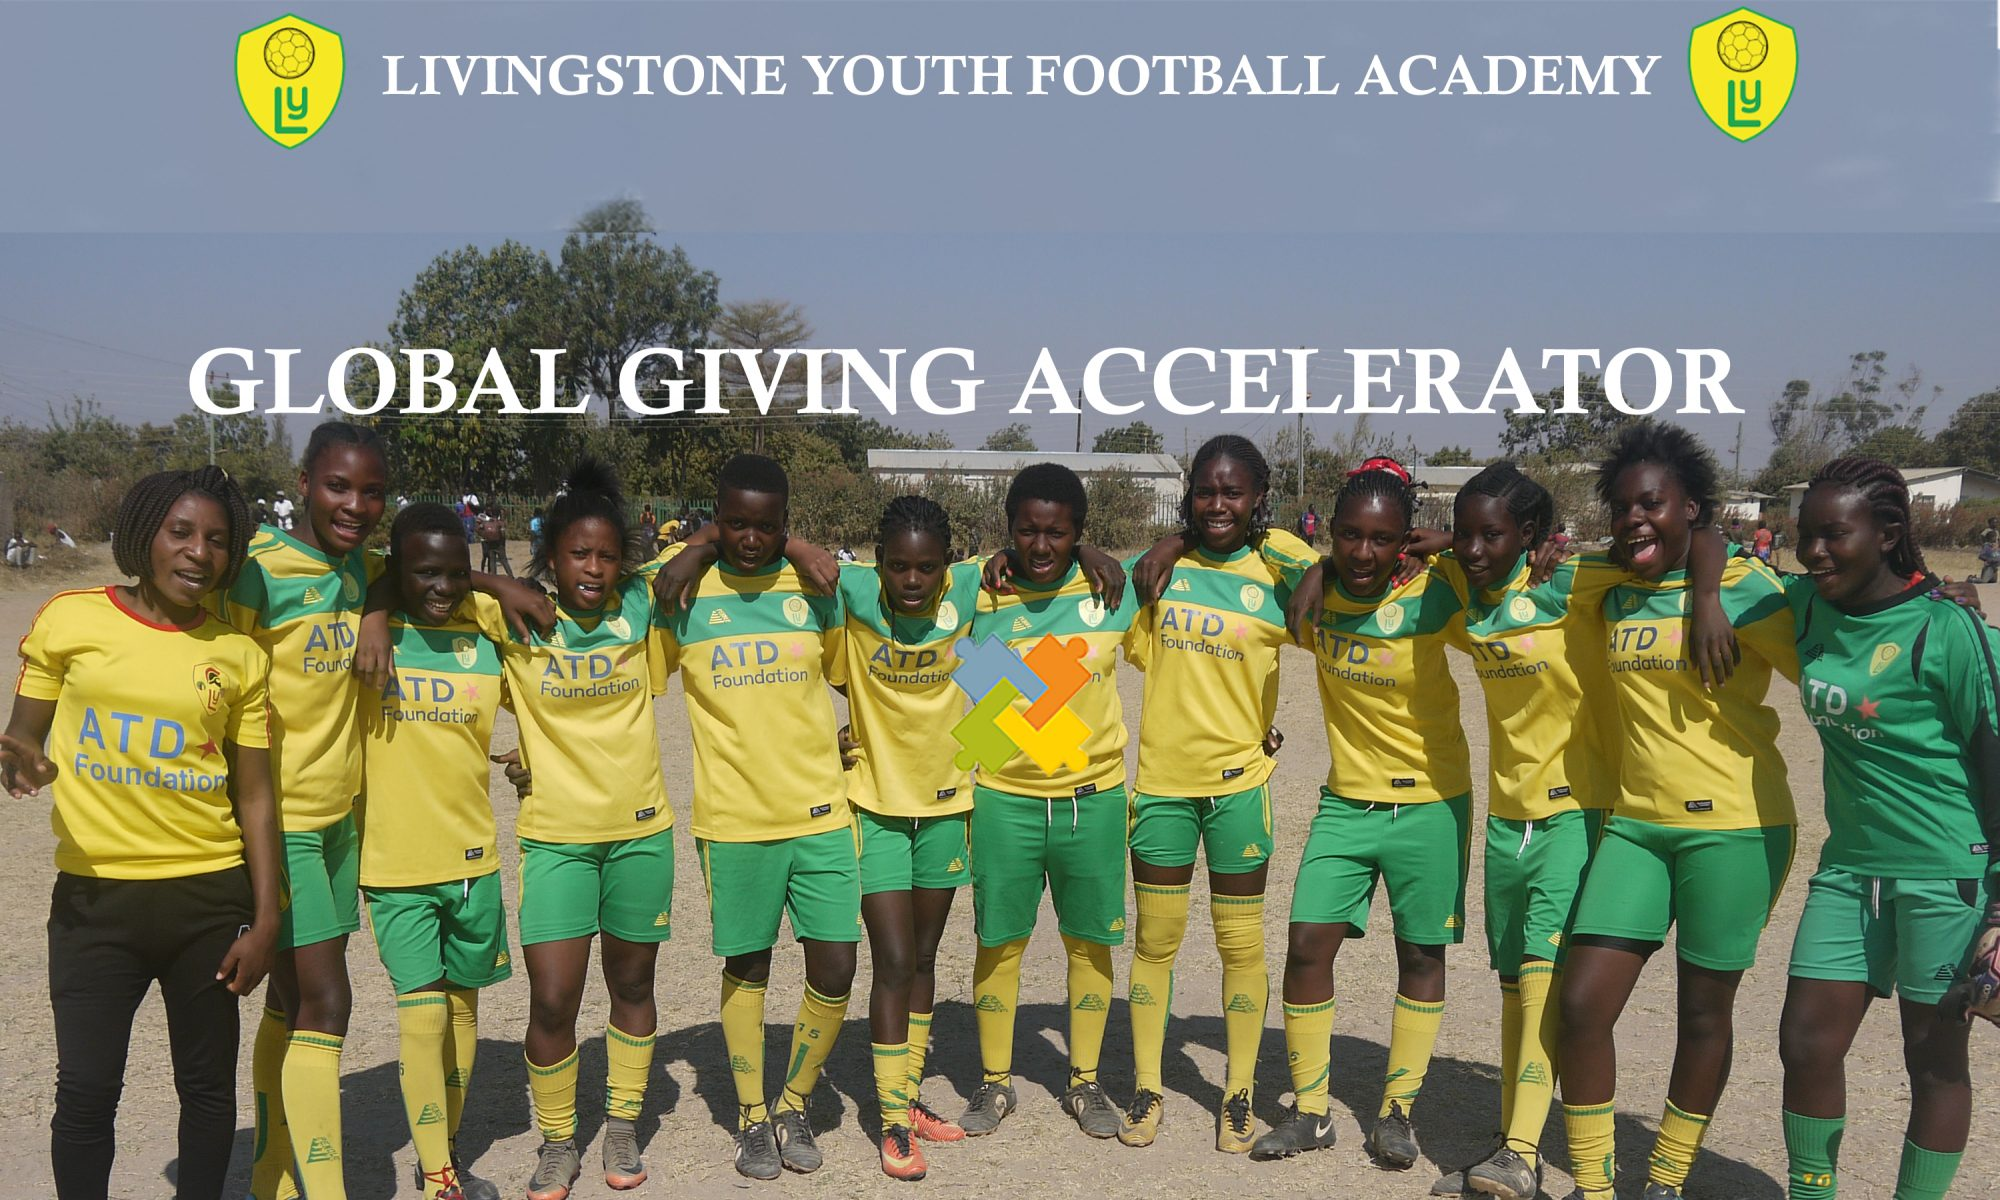 Livingstone Youth Football Academy